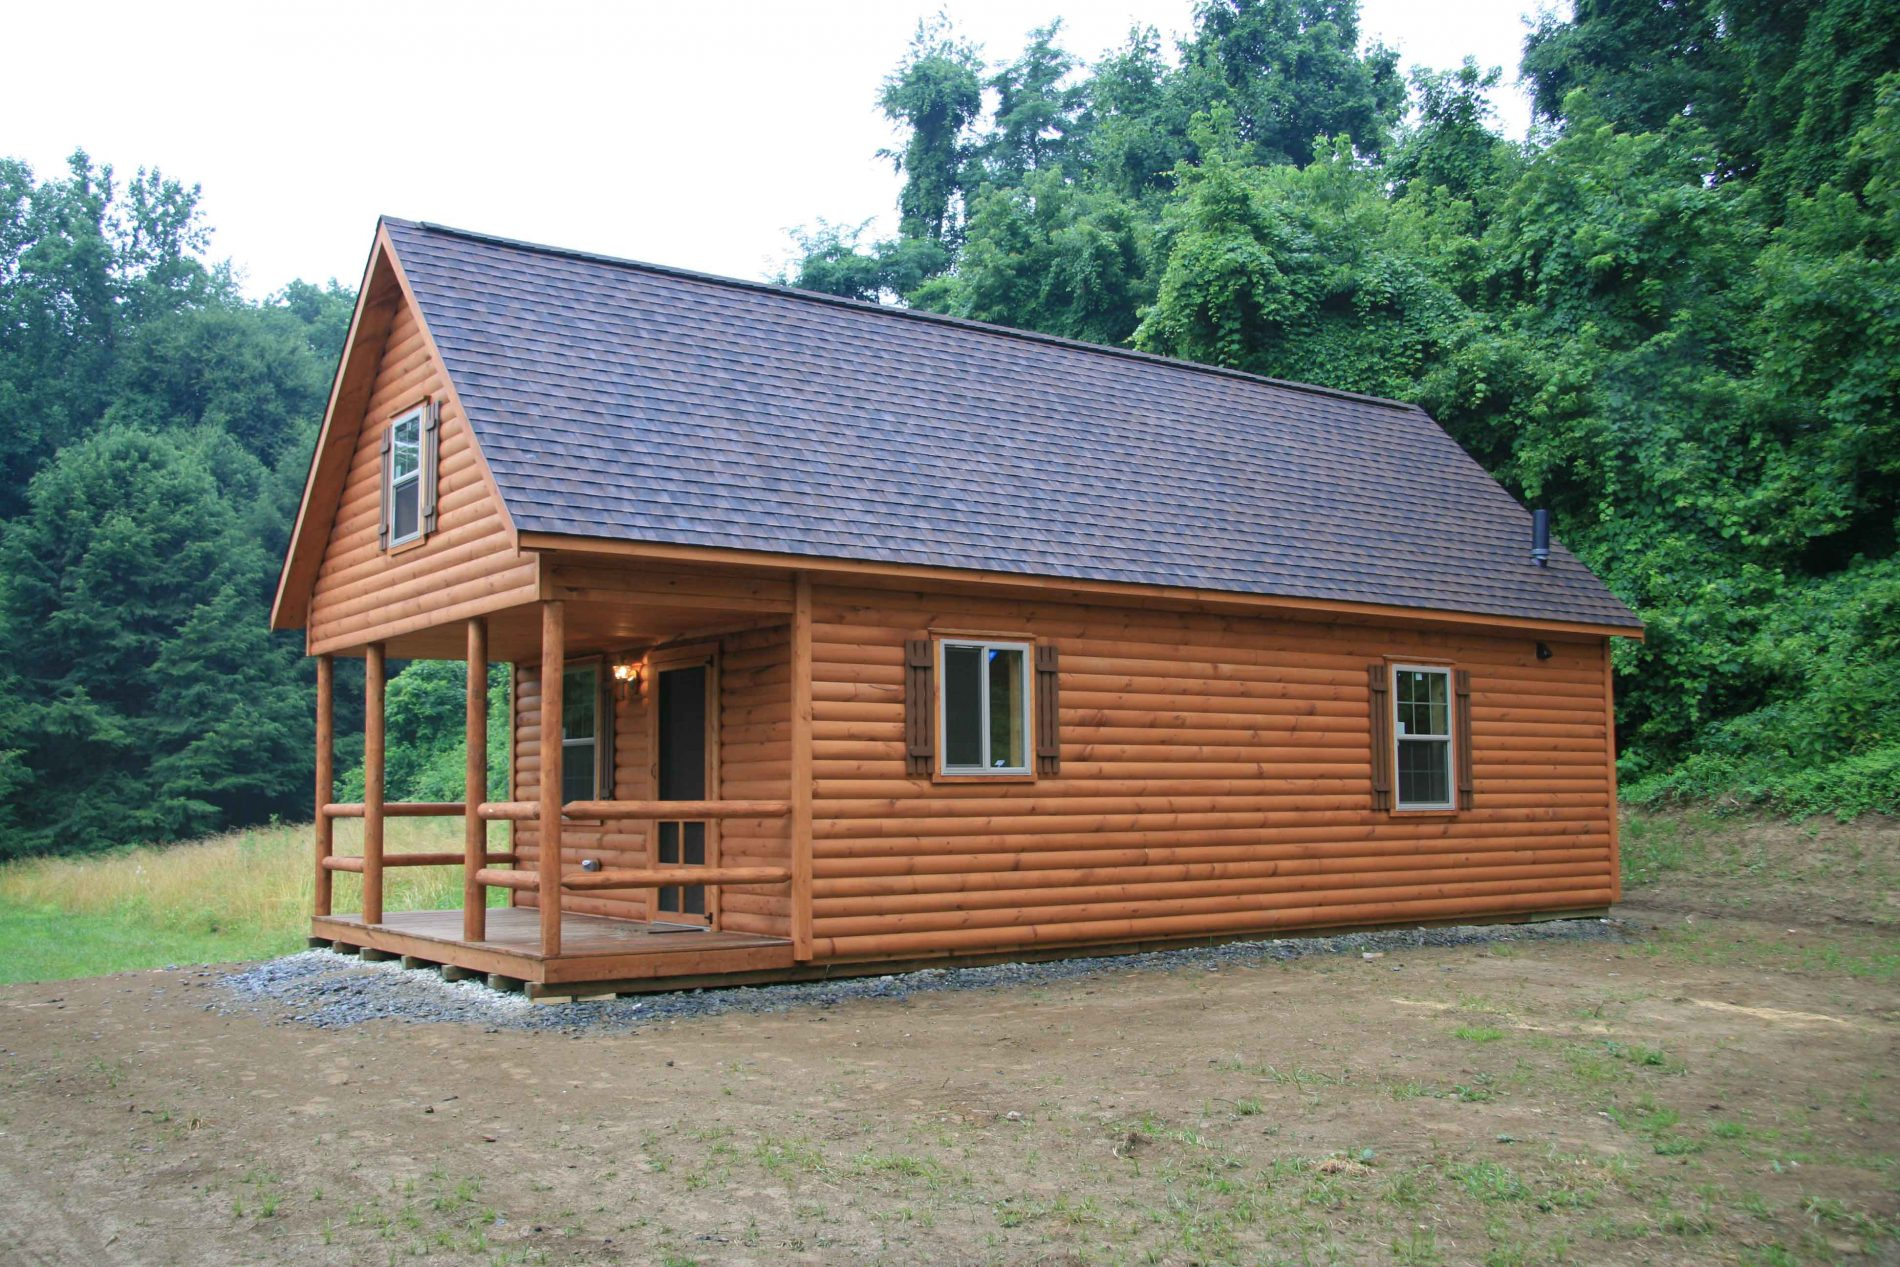 Prefab log cabin pictures and prefab log home photos for Modular cabins and cottages